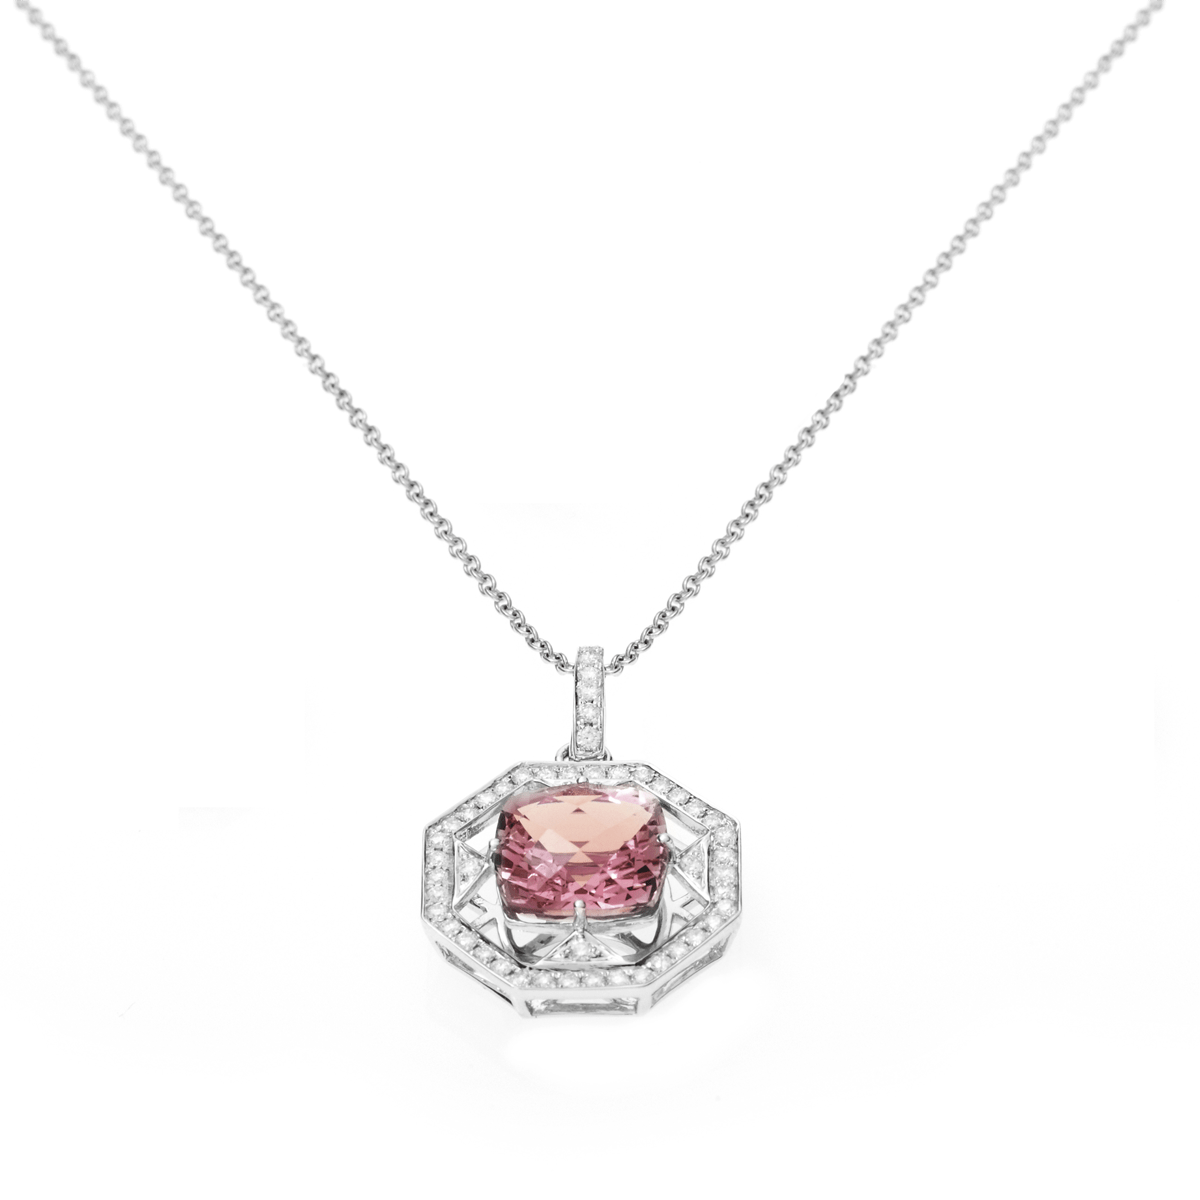 PINK TOURMALINE NECKLACE- FENG SHI - Chris Aire Fine Jewelry & Timepieces